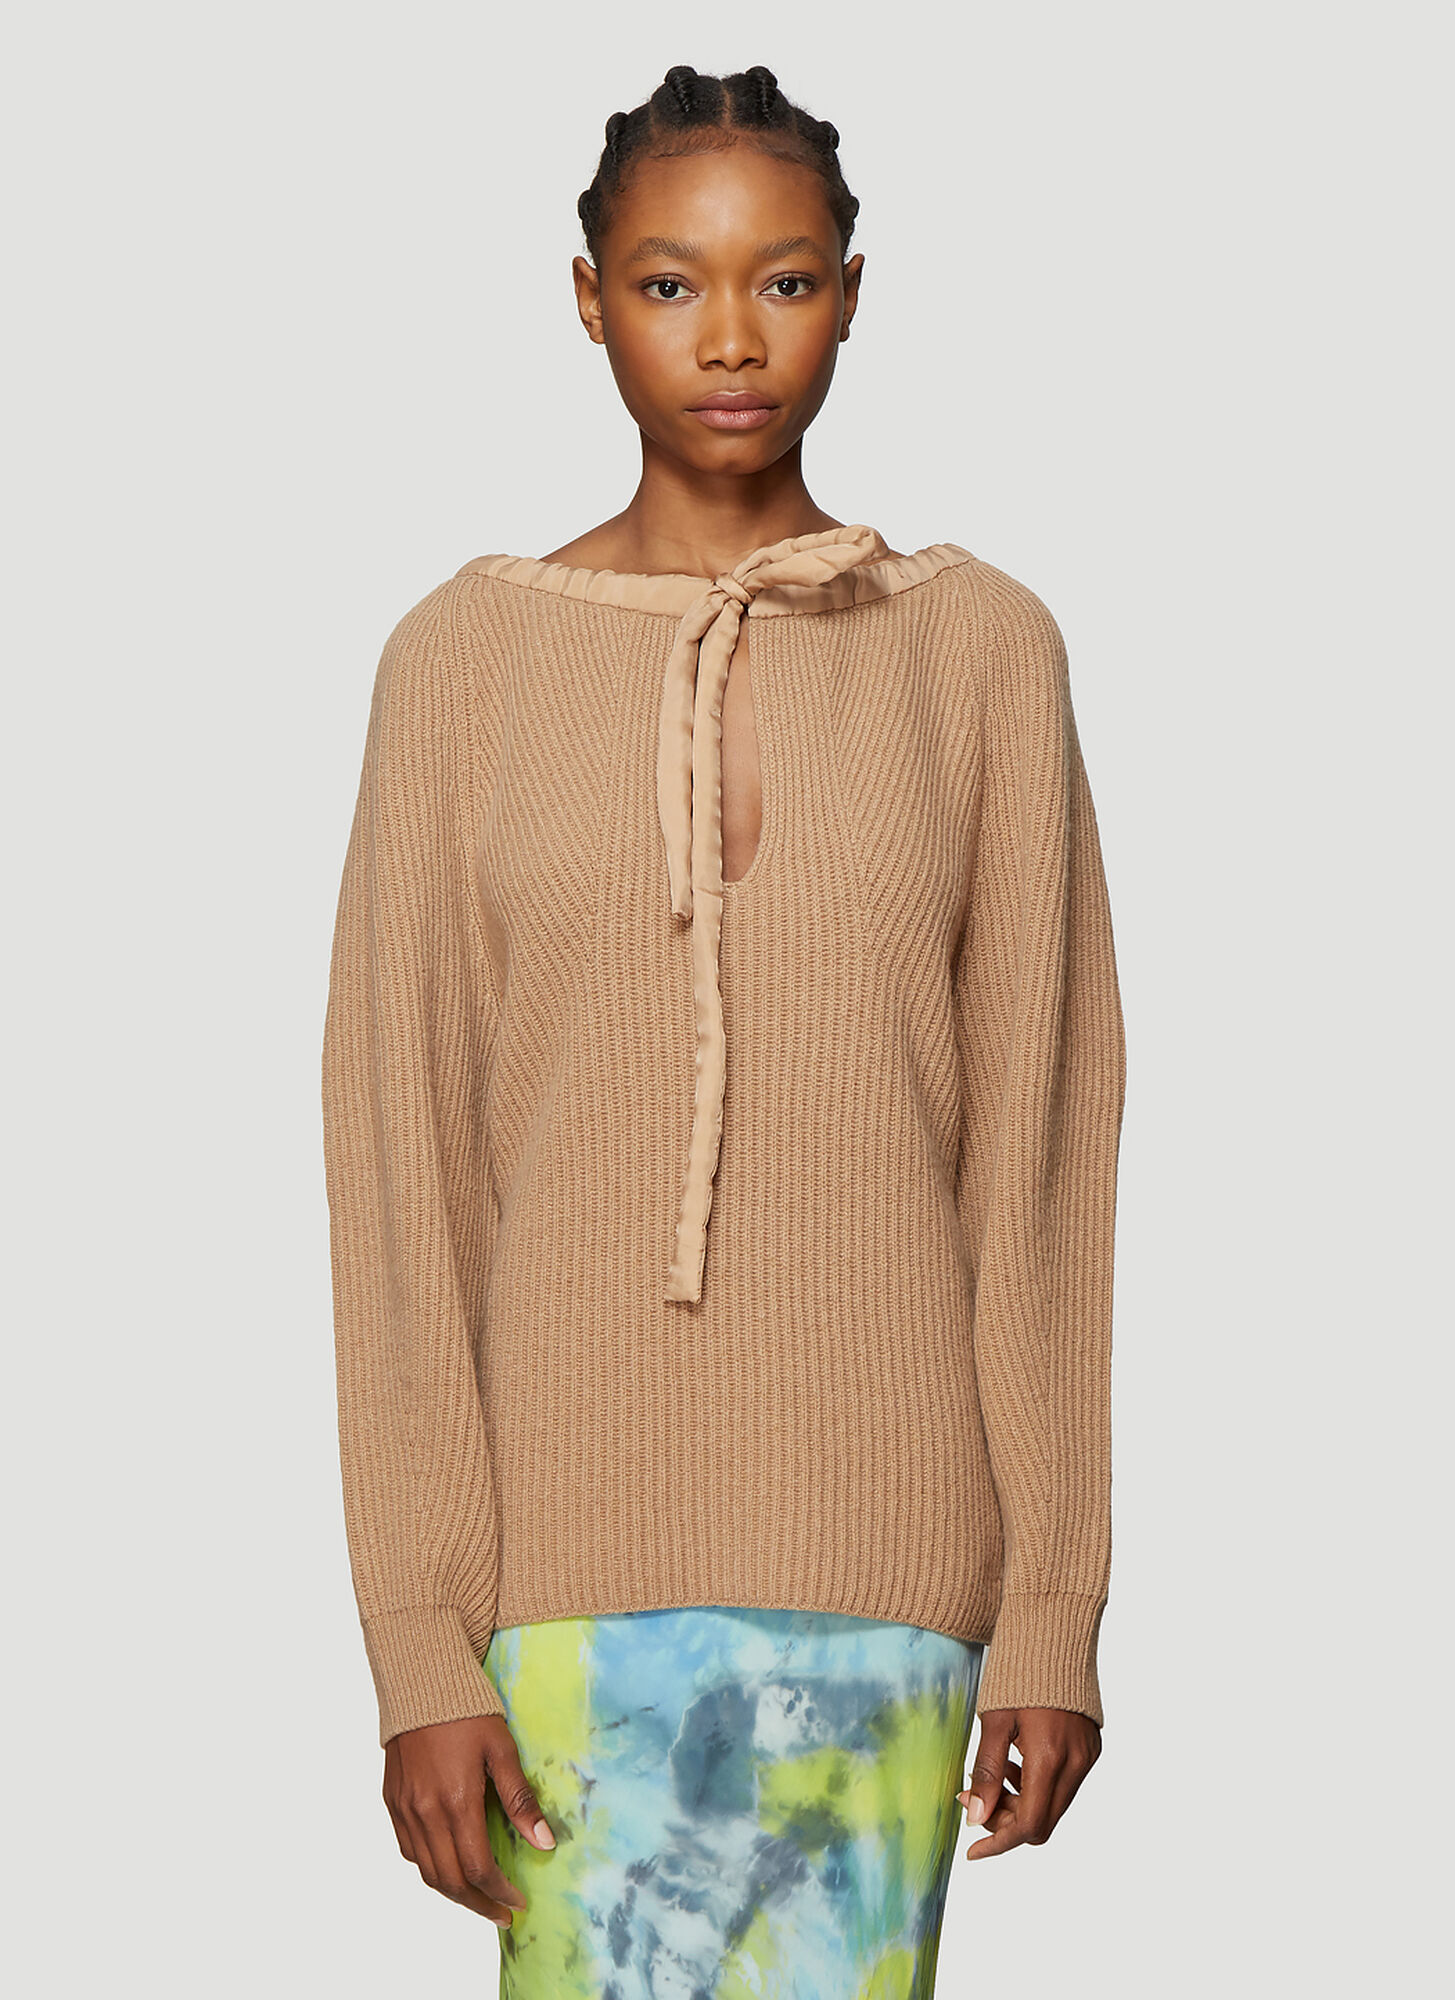 Photo of Stella McCartney Cold-Shoulder Sweater in Beige - Stella McCartney Knitwear